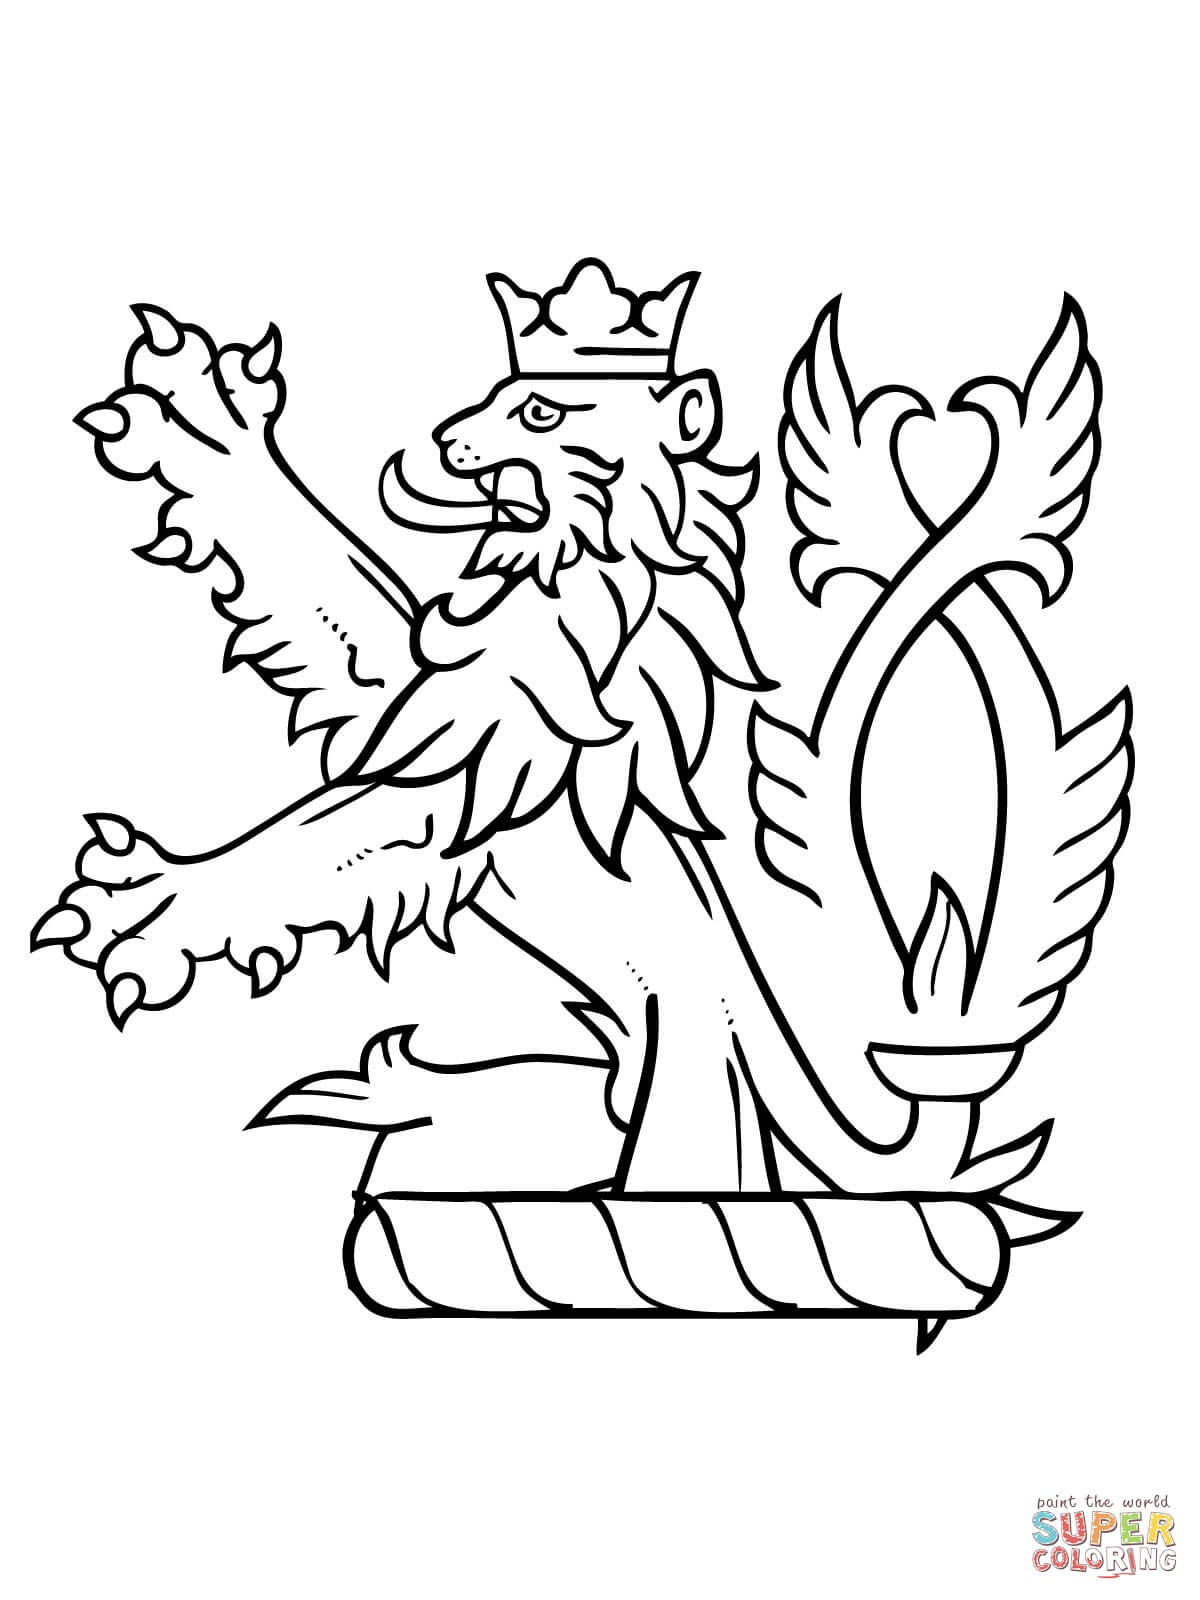 scottish colouring pages outline of scotland coloring home scottish pages colouring